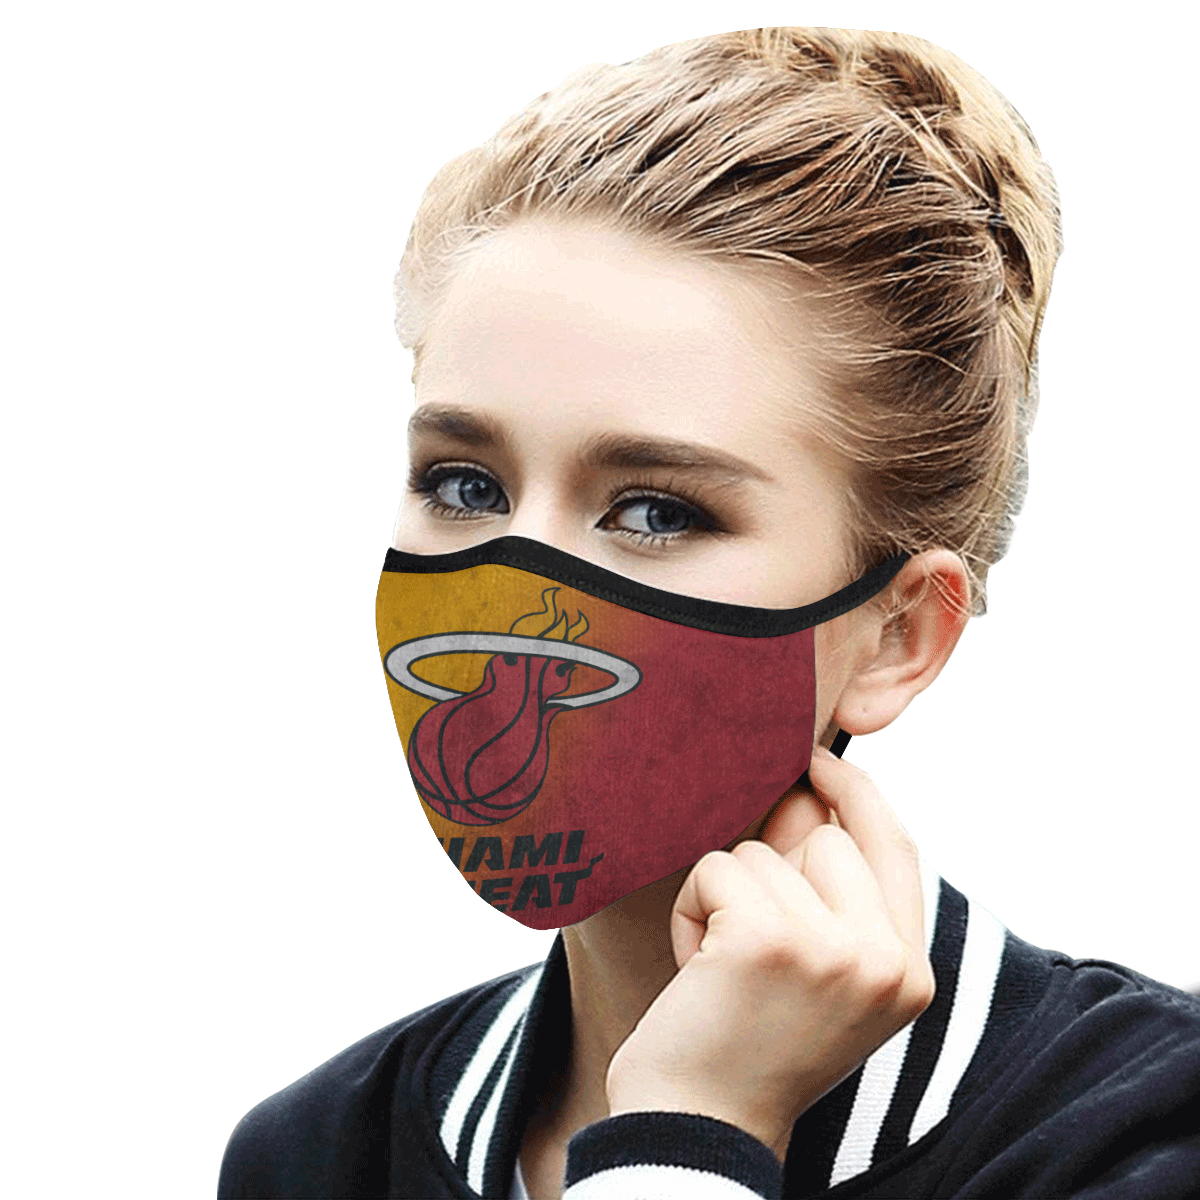 Miami Heat Best Face Mask Filter Pm25 2020 Hoodie Sweatshirt And Long Sleeve